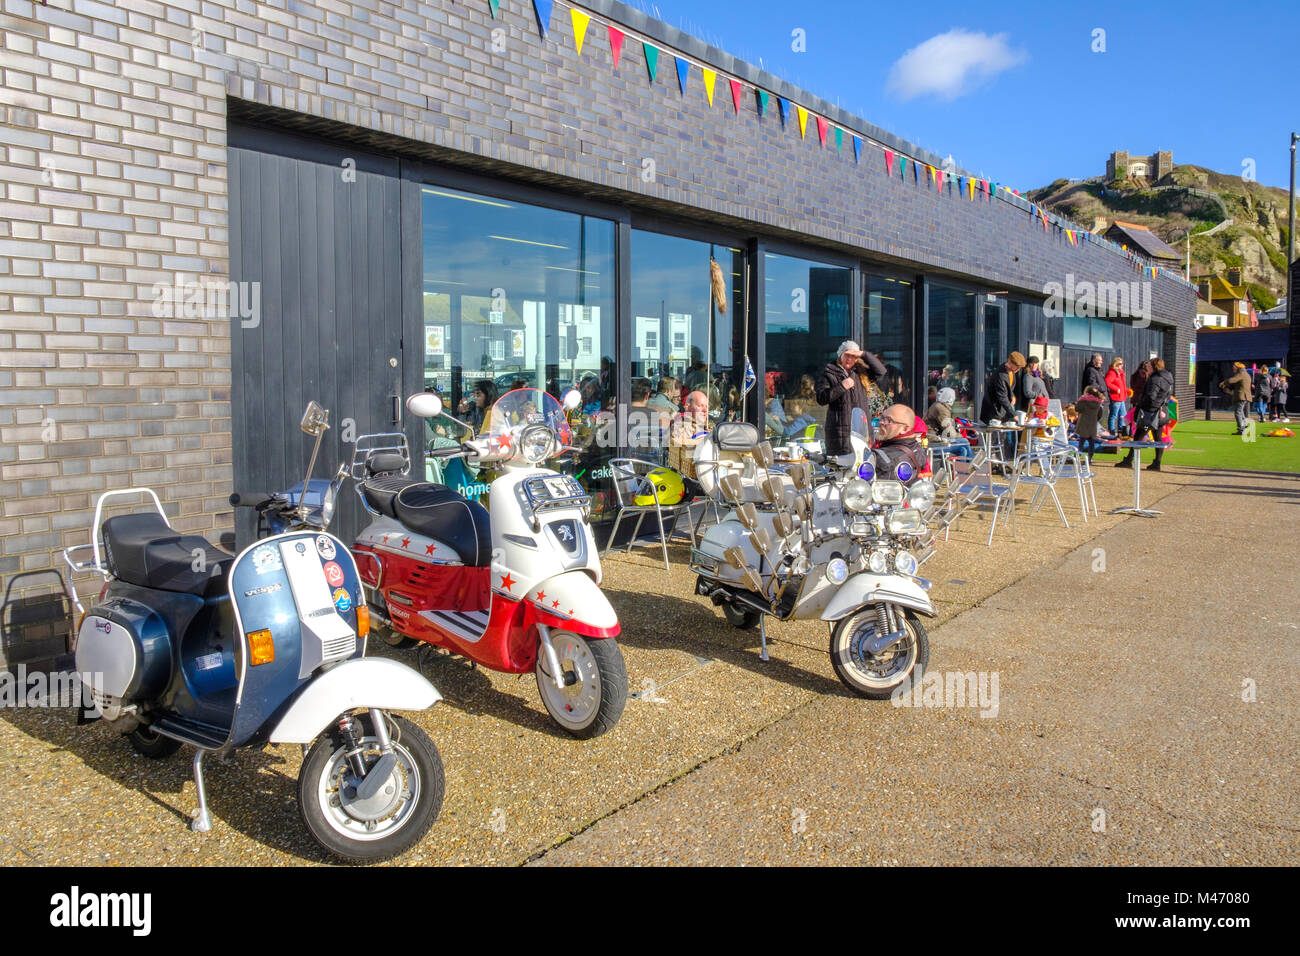 Motor scooters outside eat@ café at Hastings on the seafront Stade, East Sussex, England, UK - Stock Image